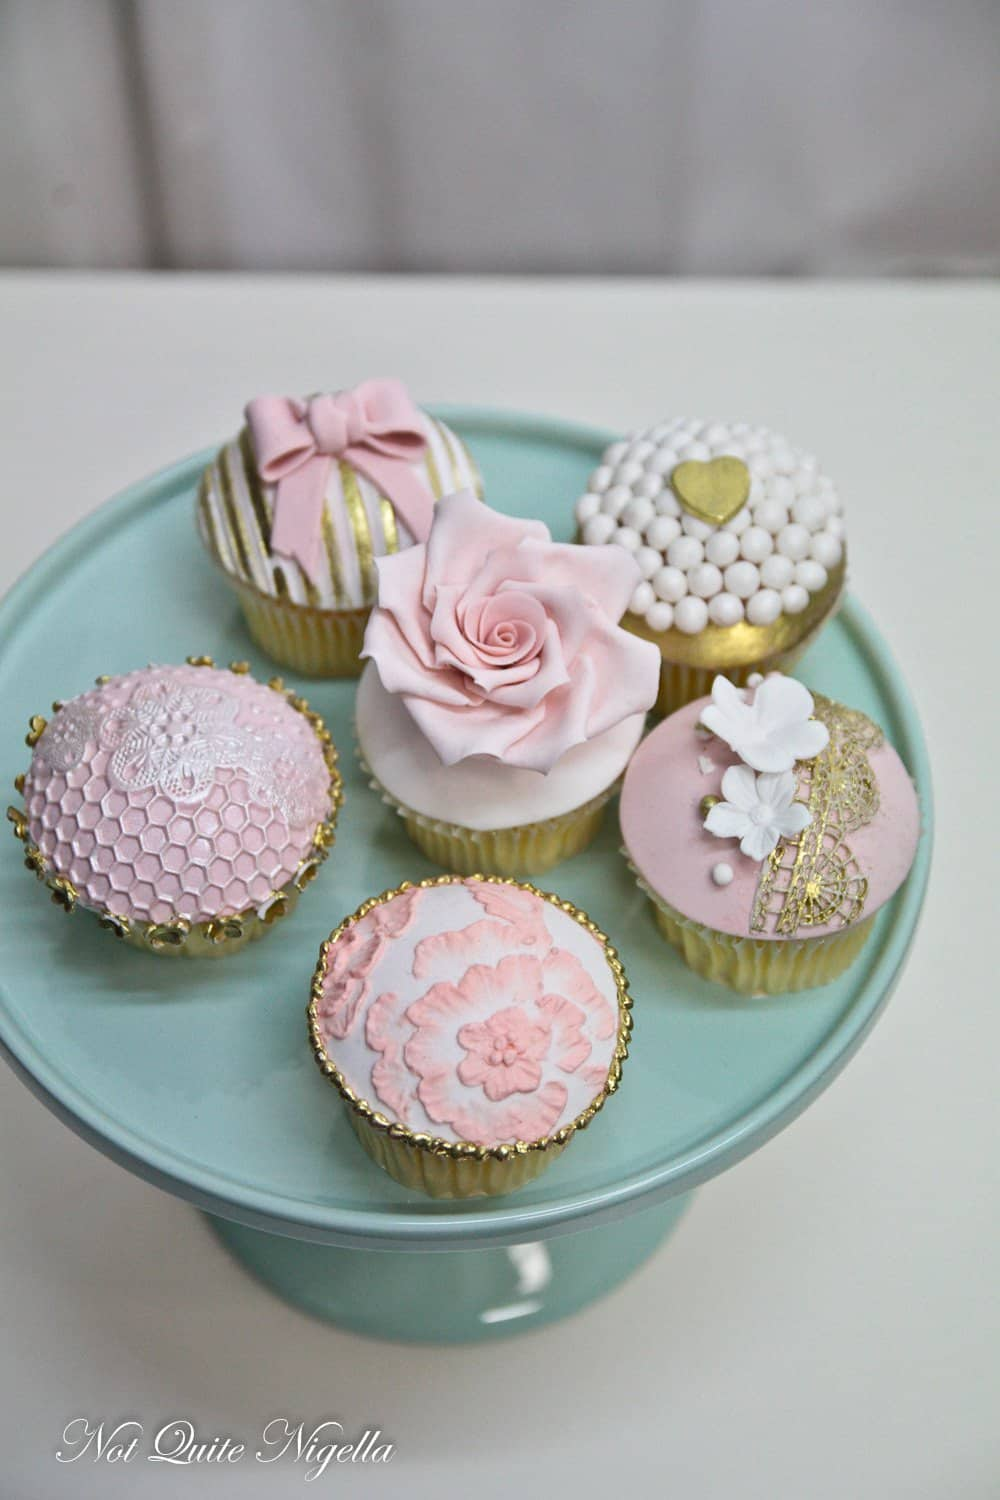 10 Of The Prettiest Cupcake Designs Diy Thought